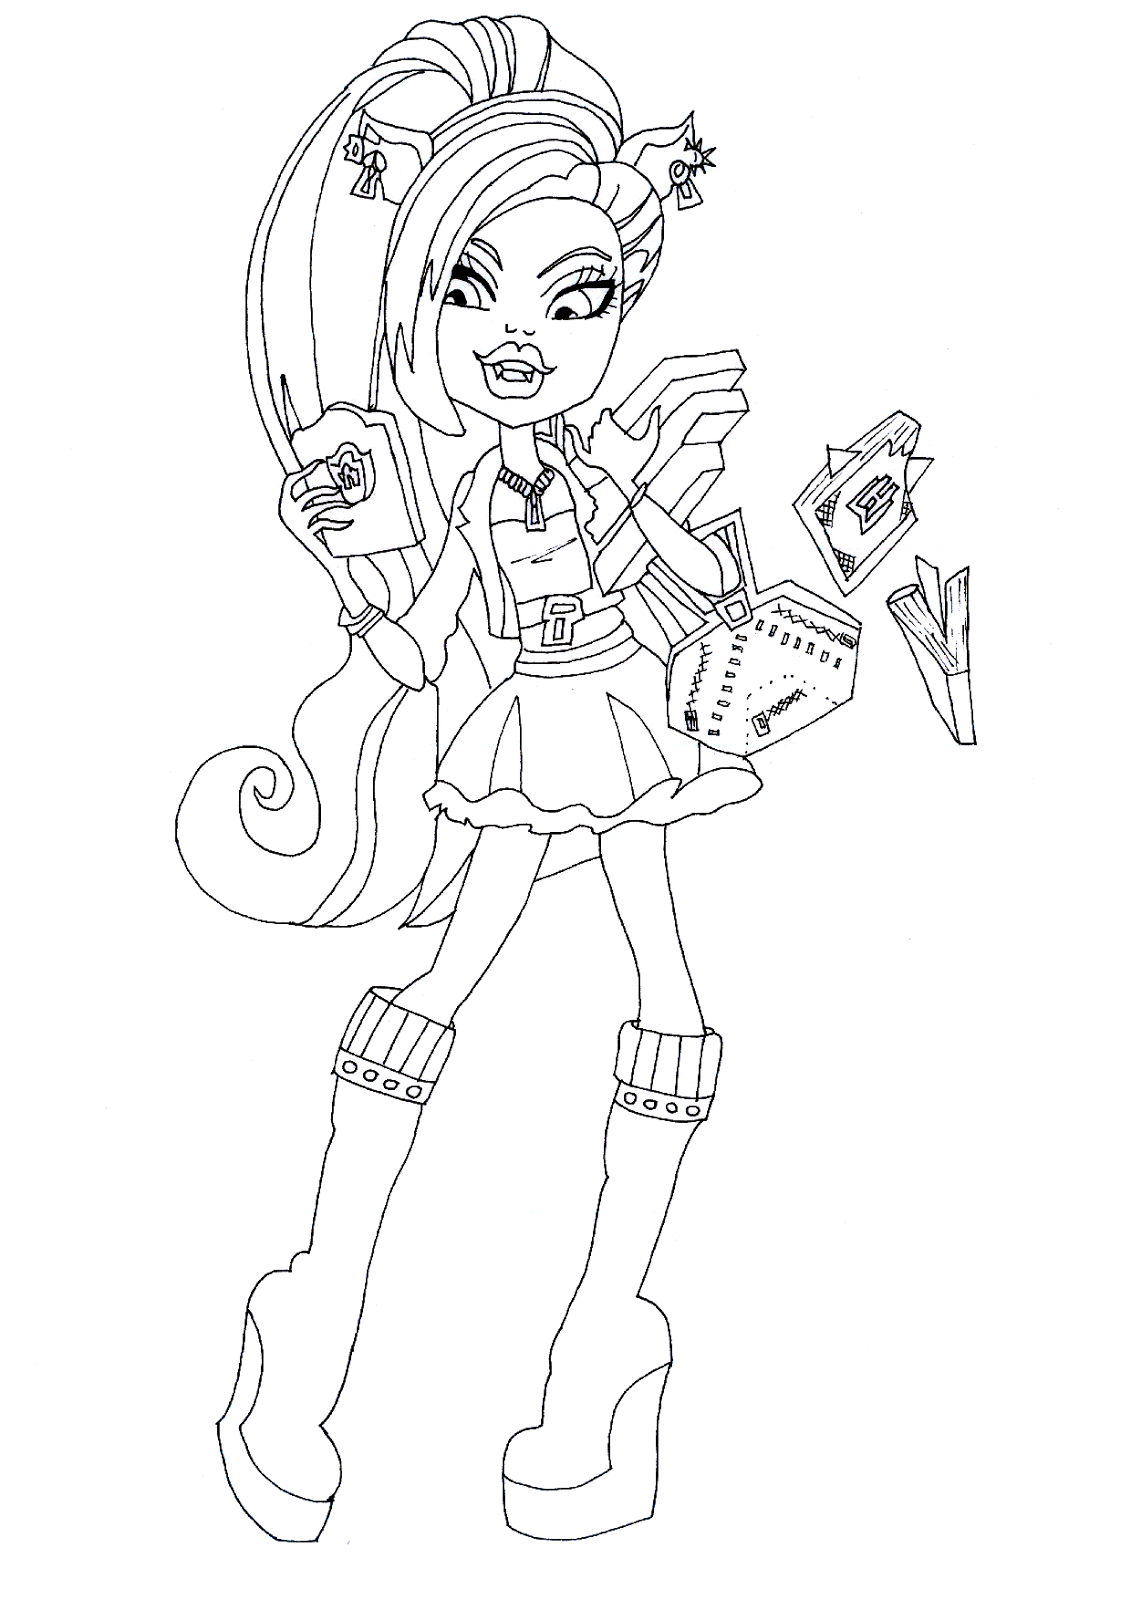 Free Printable Monster High Coloring Pages: Clawdeen Wolf ...